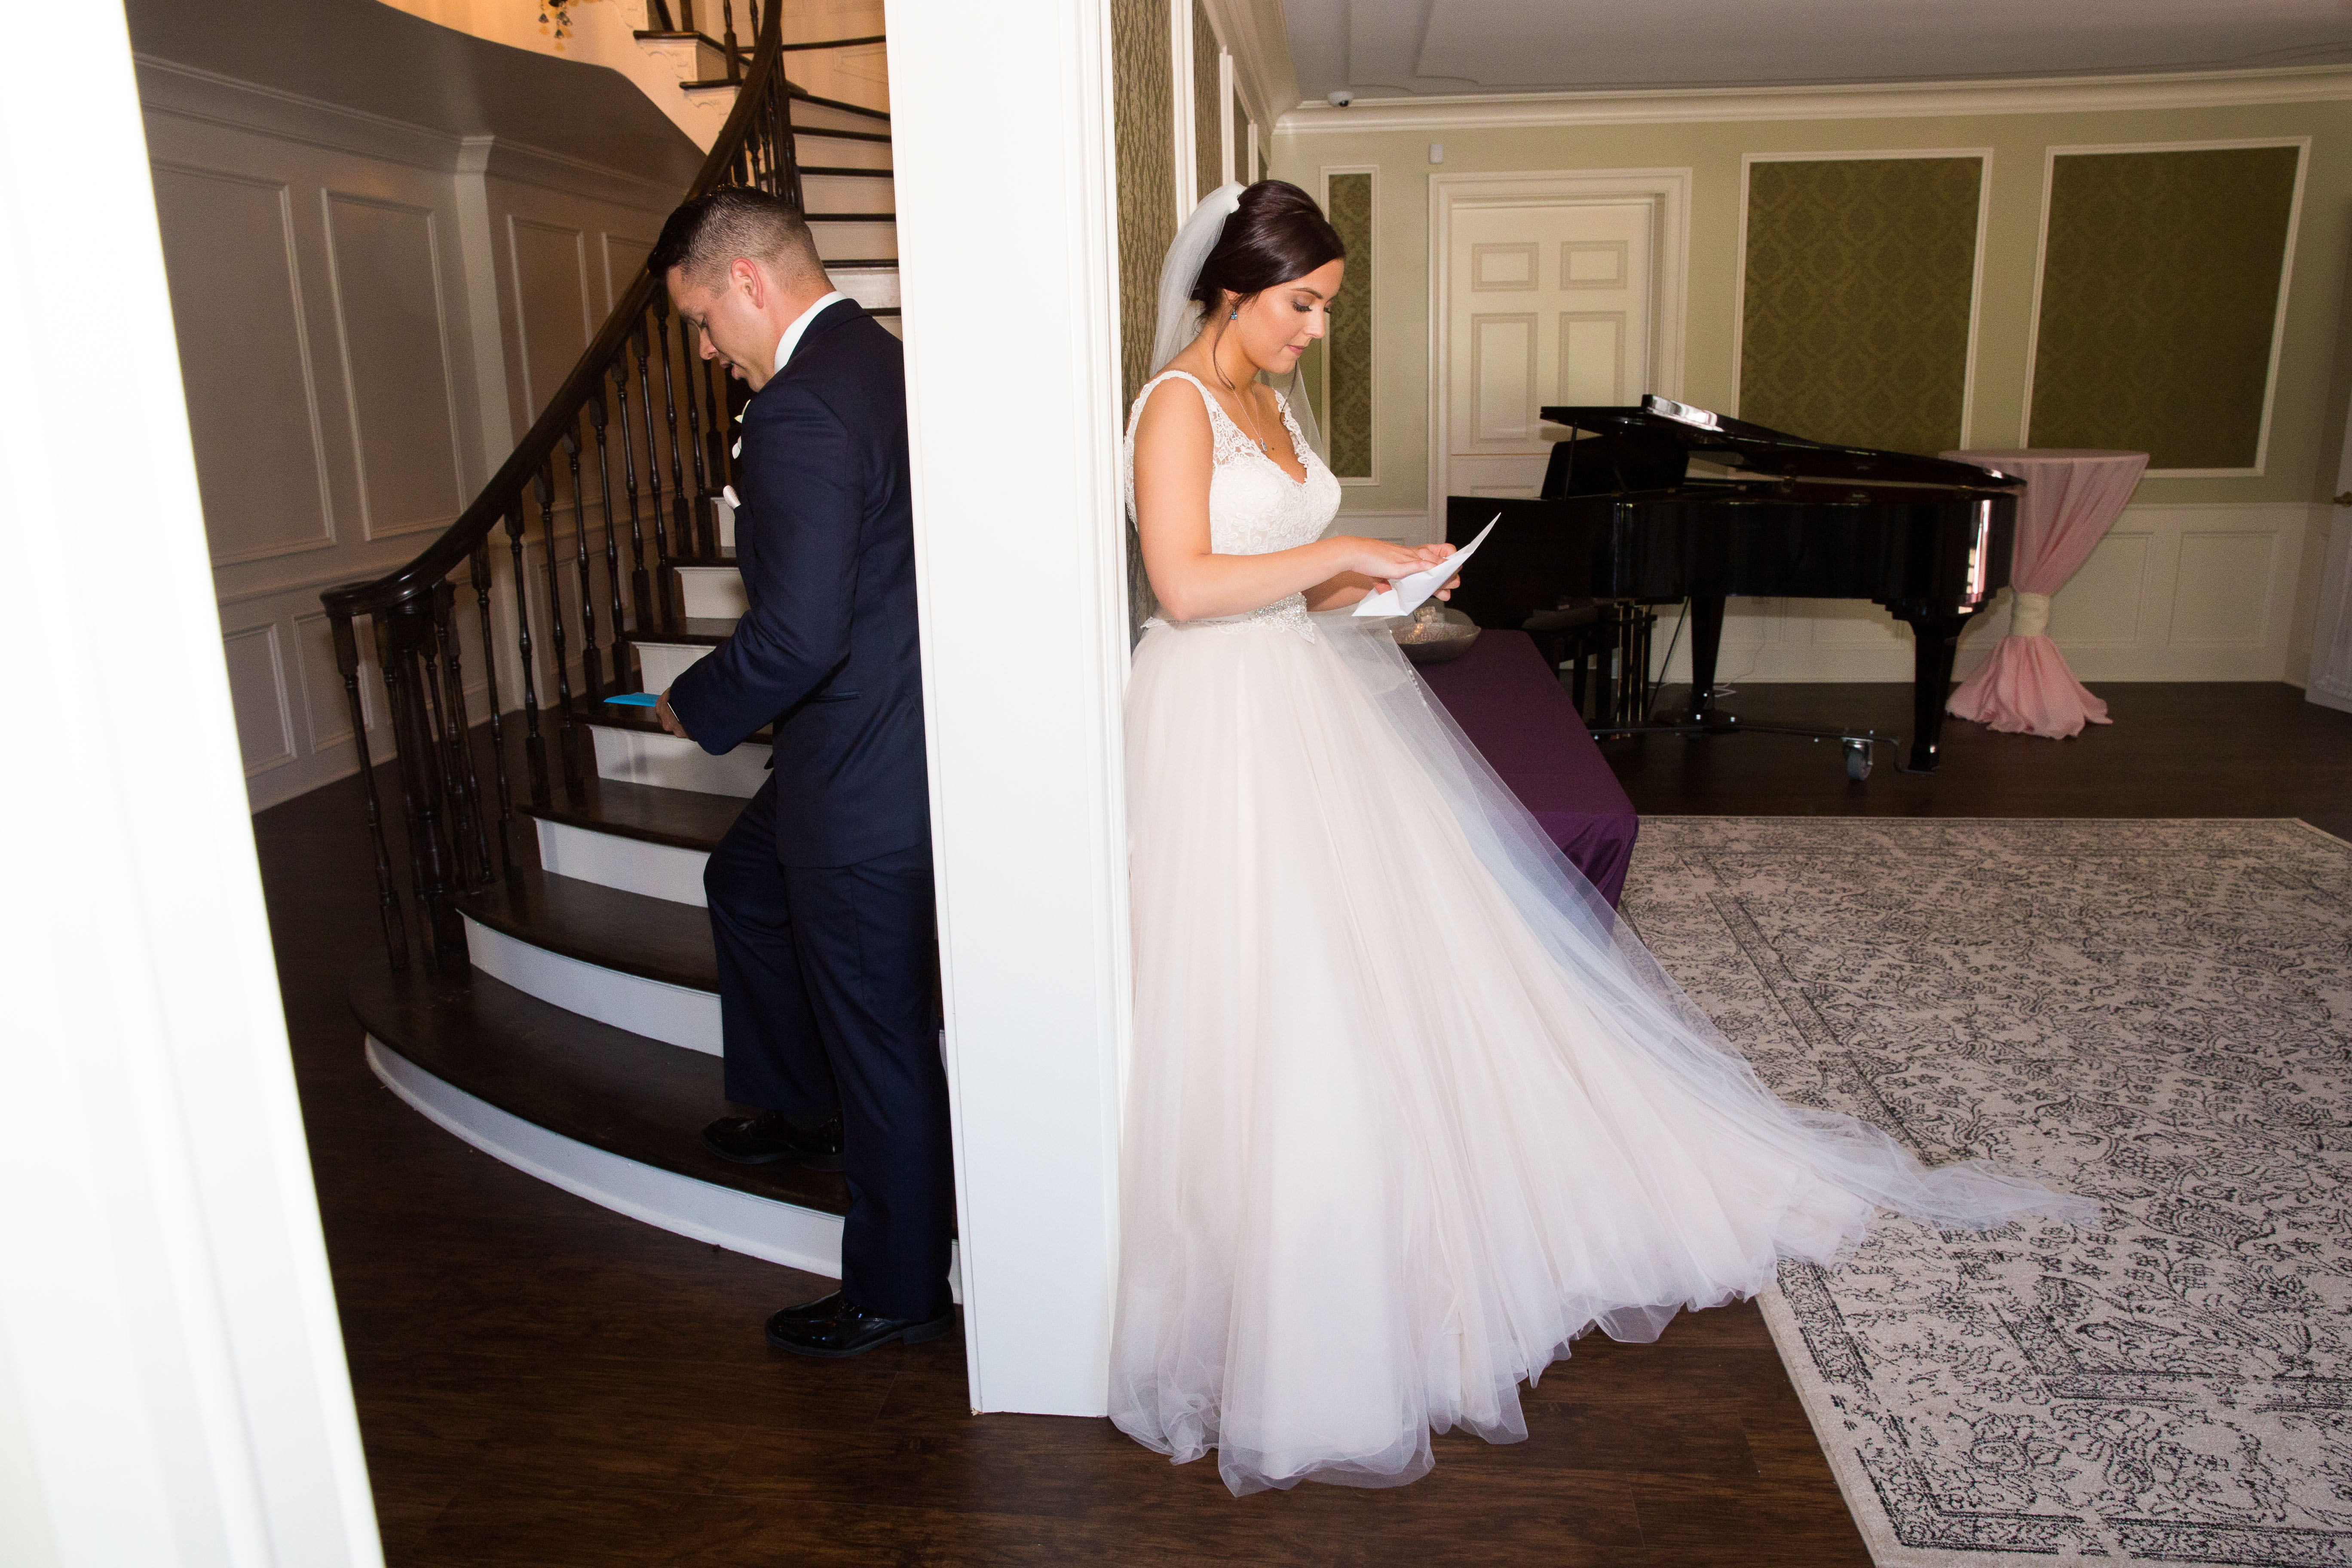 Intimate Moments to Share On Your Special Day